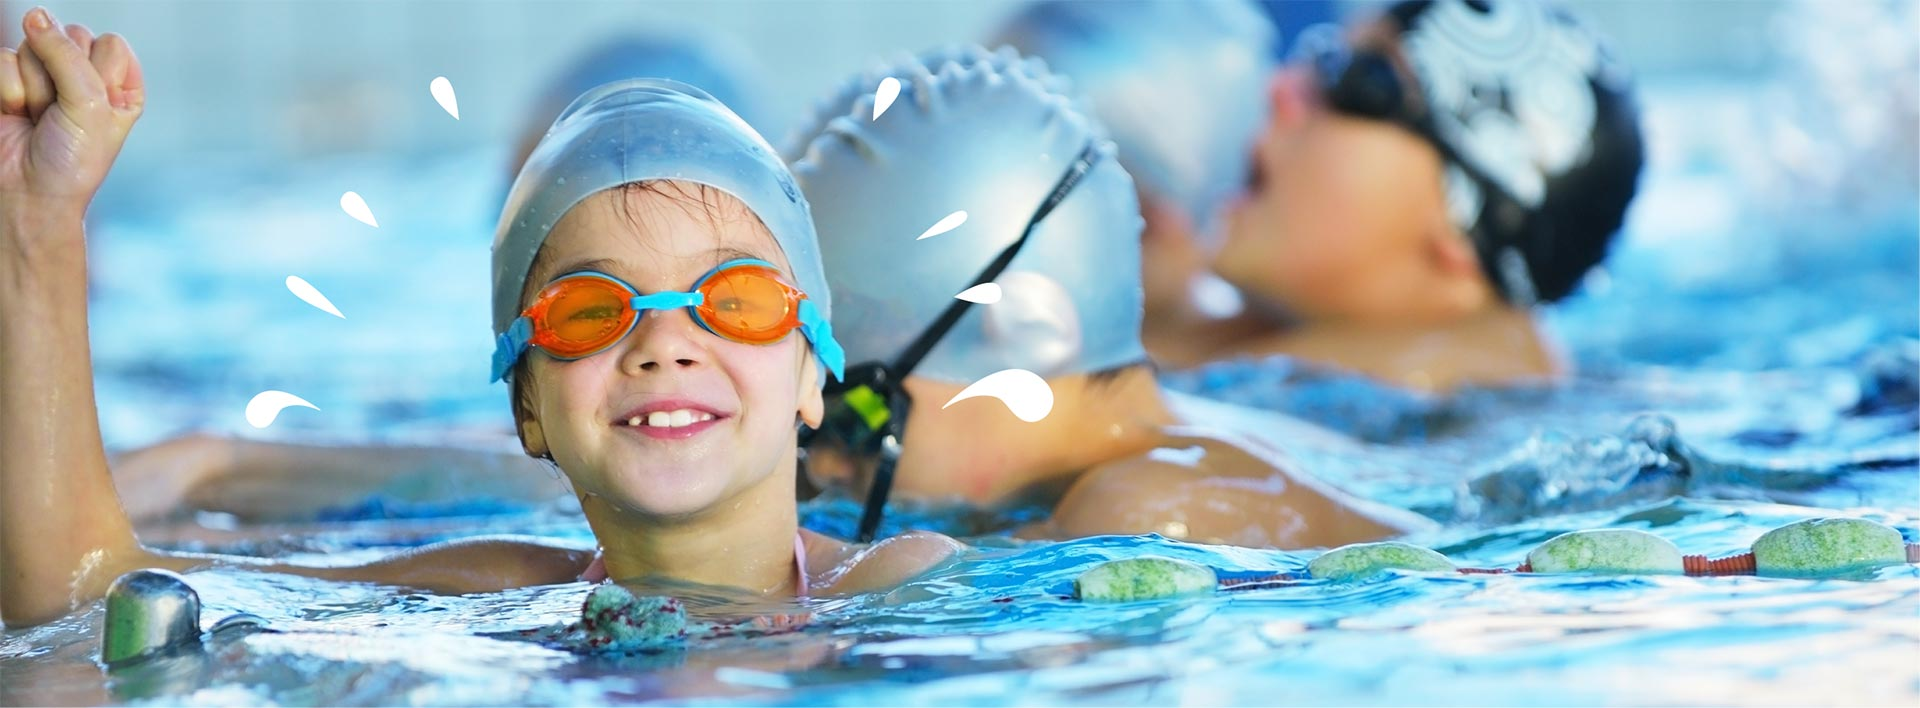 Why learn to swim?